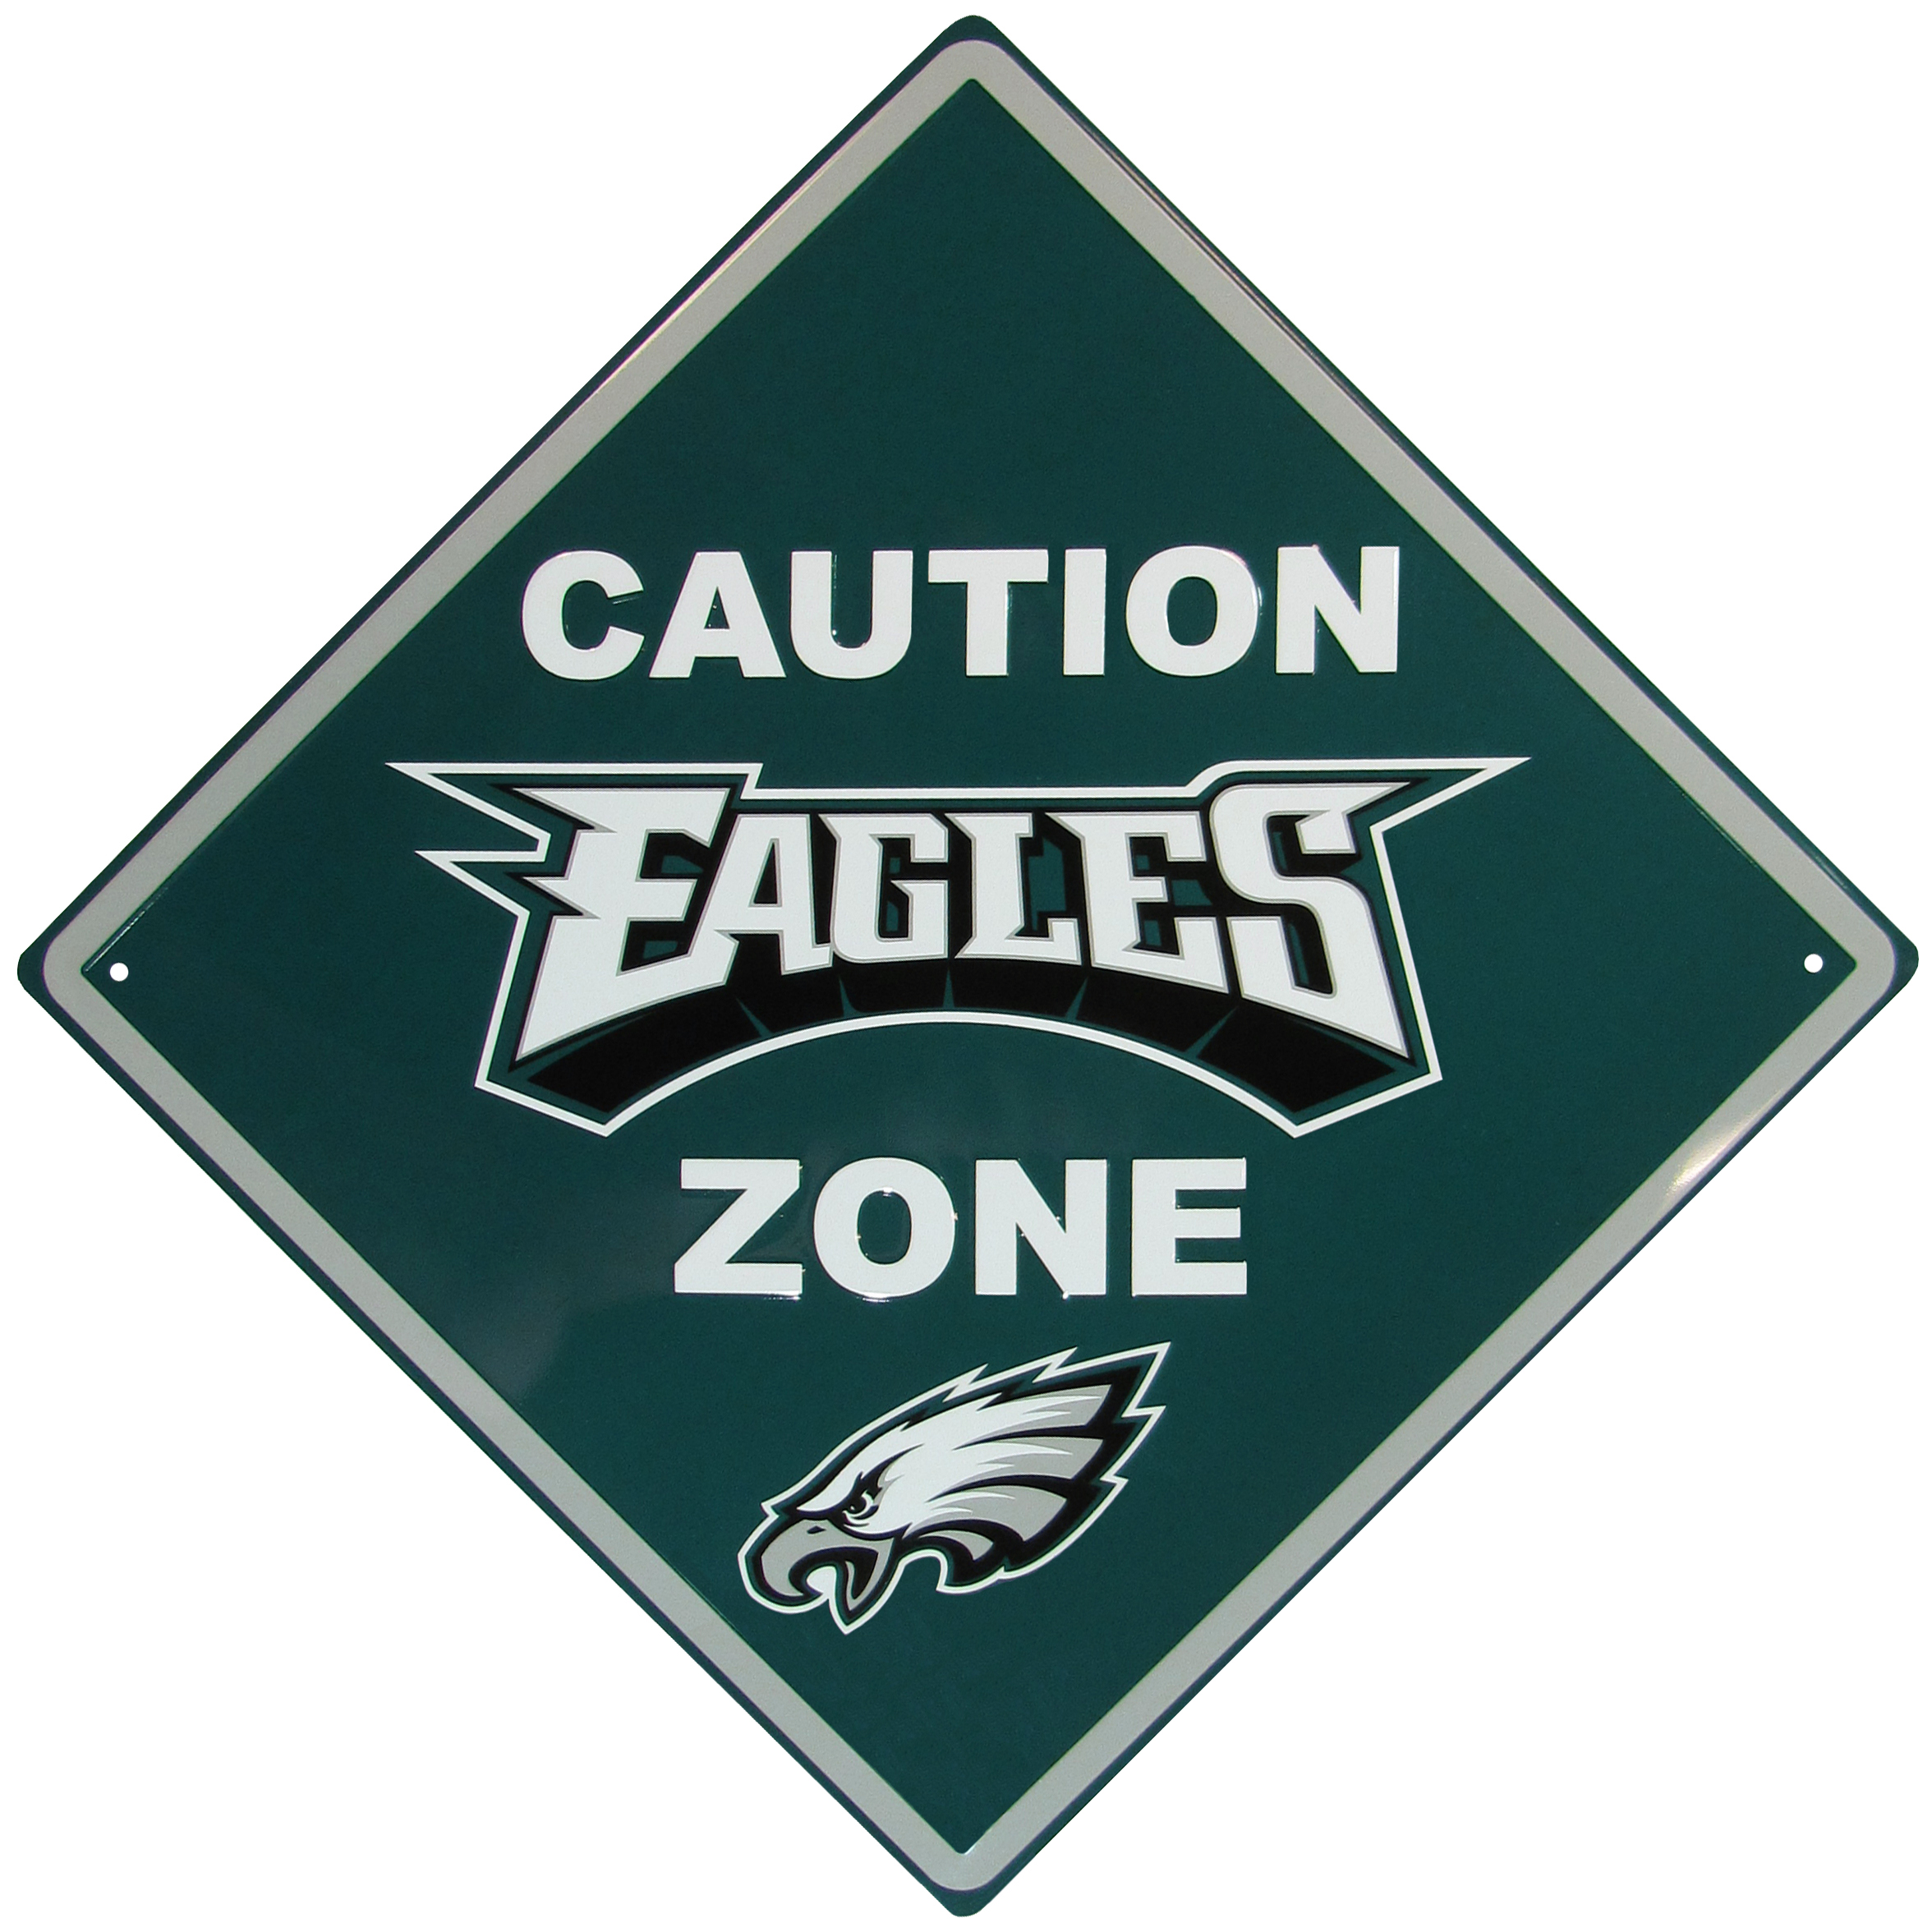 Philadelphia Eagles Caution Wall Sign Plaque - Let everyone know that they are entering Philadelphia Eagles territory! Our 14 inch caution wall plaques are a the perfect way to convert any room into a fan cave! The light-weight aluminum signs mount easily to any wall and are perfect for the home or office.